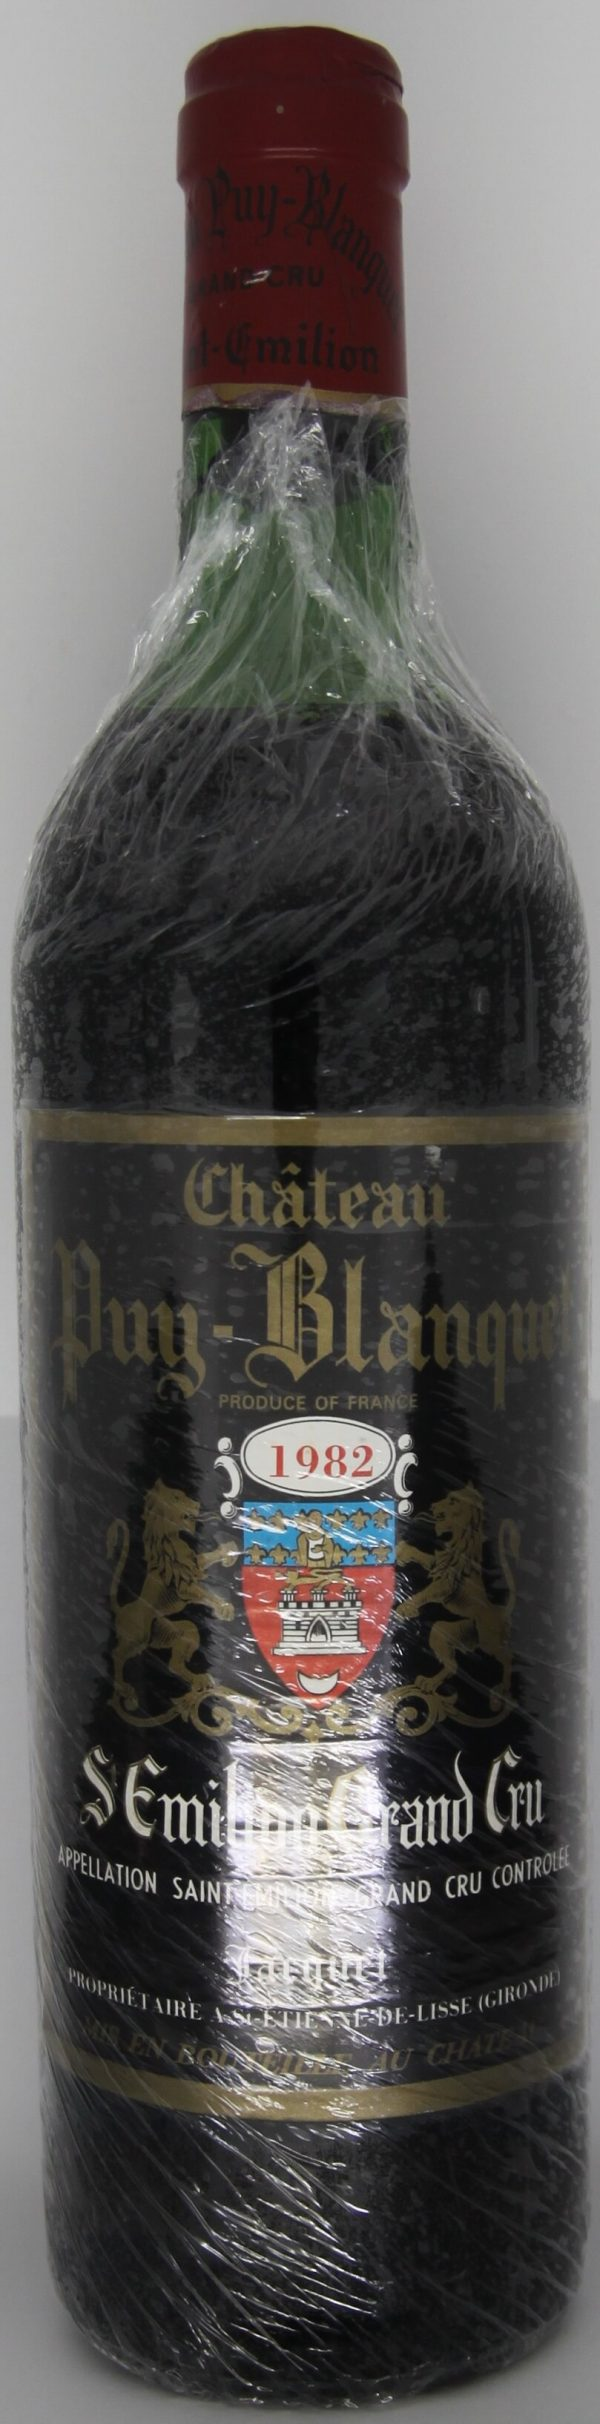 1982 Chateau Puy Blanquet